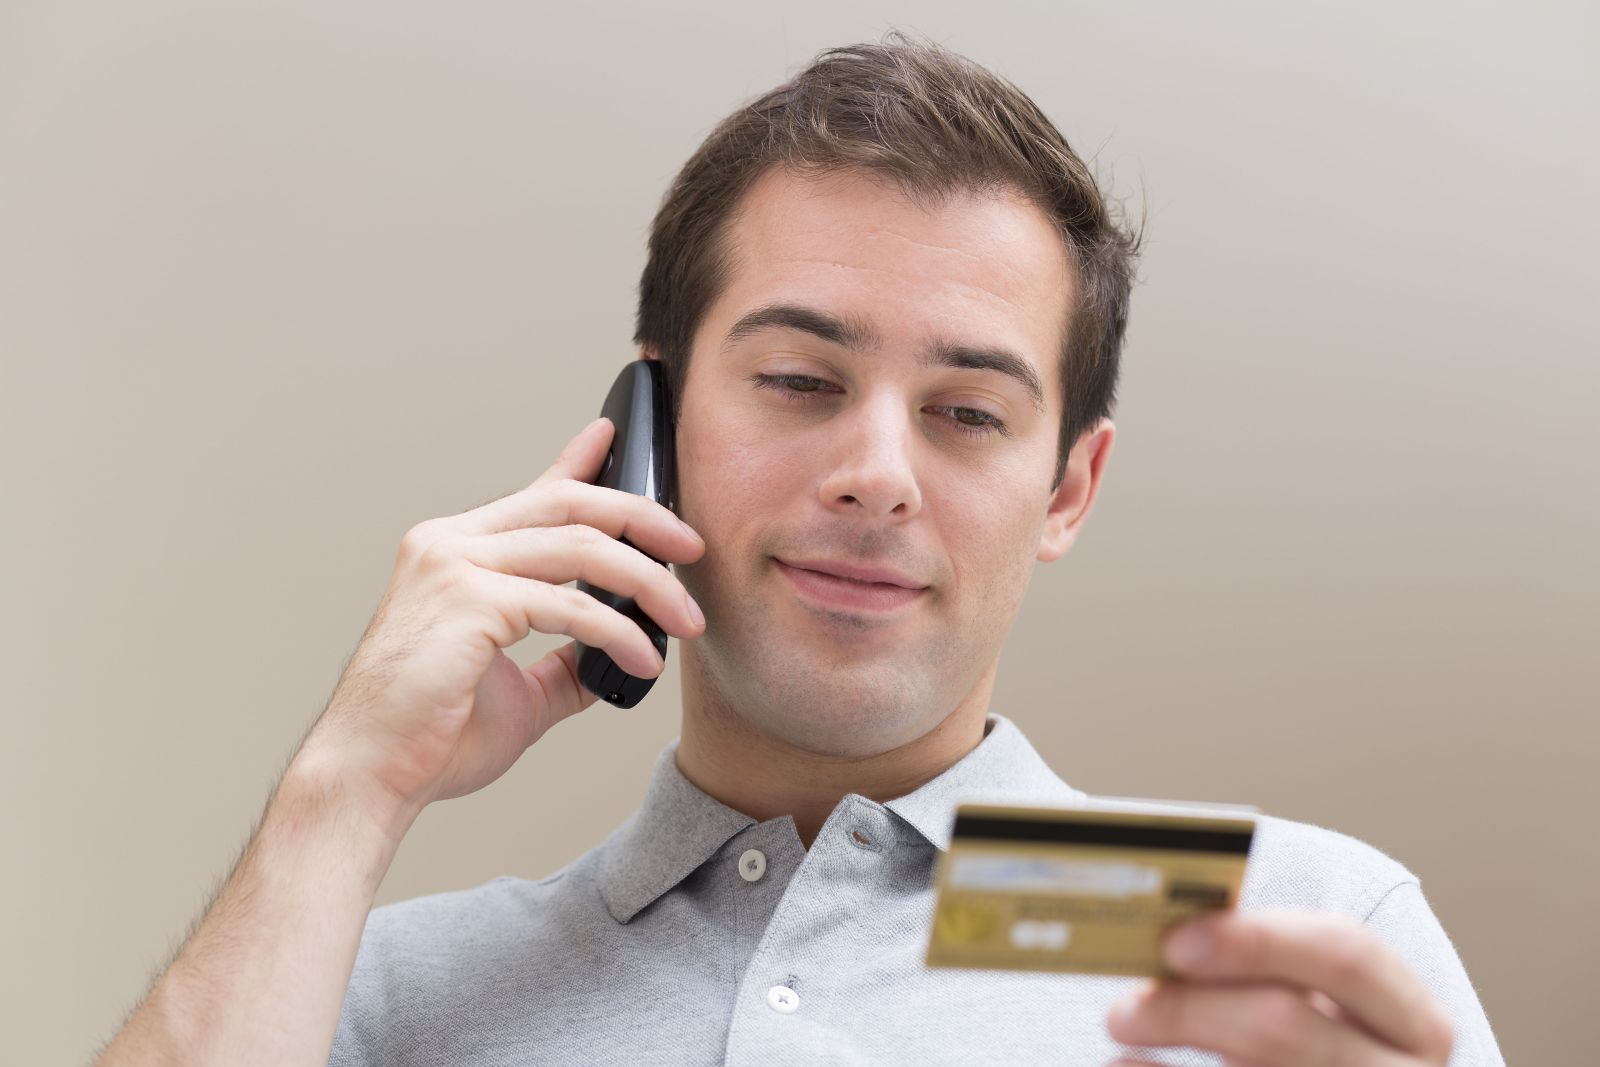 Never Underestimate The Influence Of IVR Payments For Waste Management